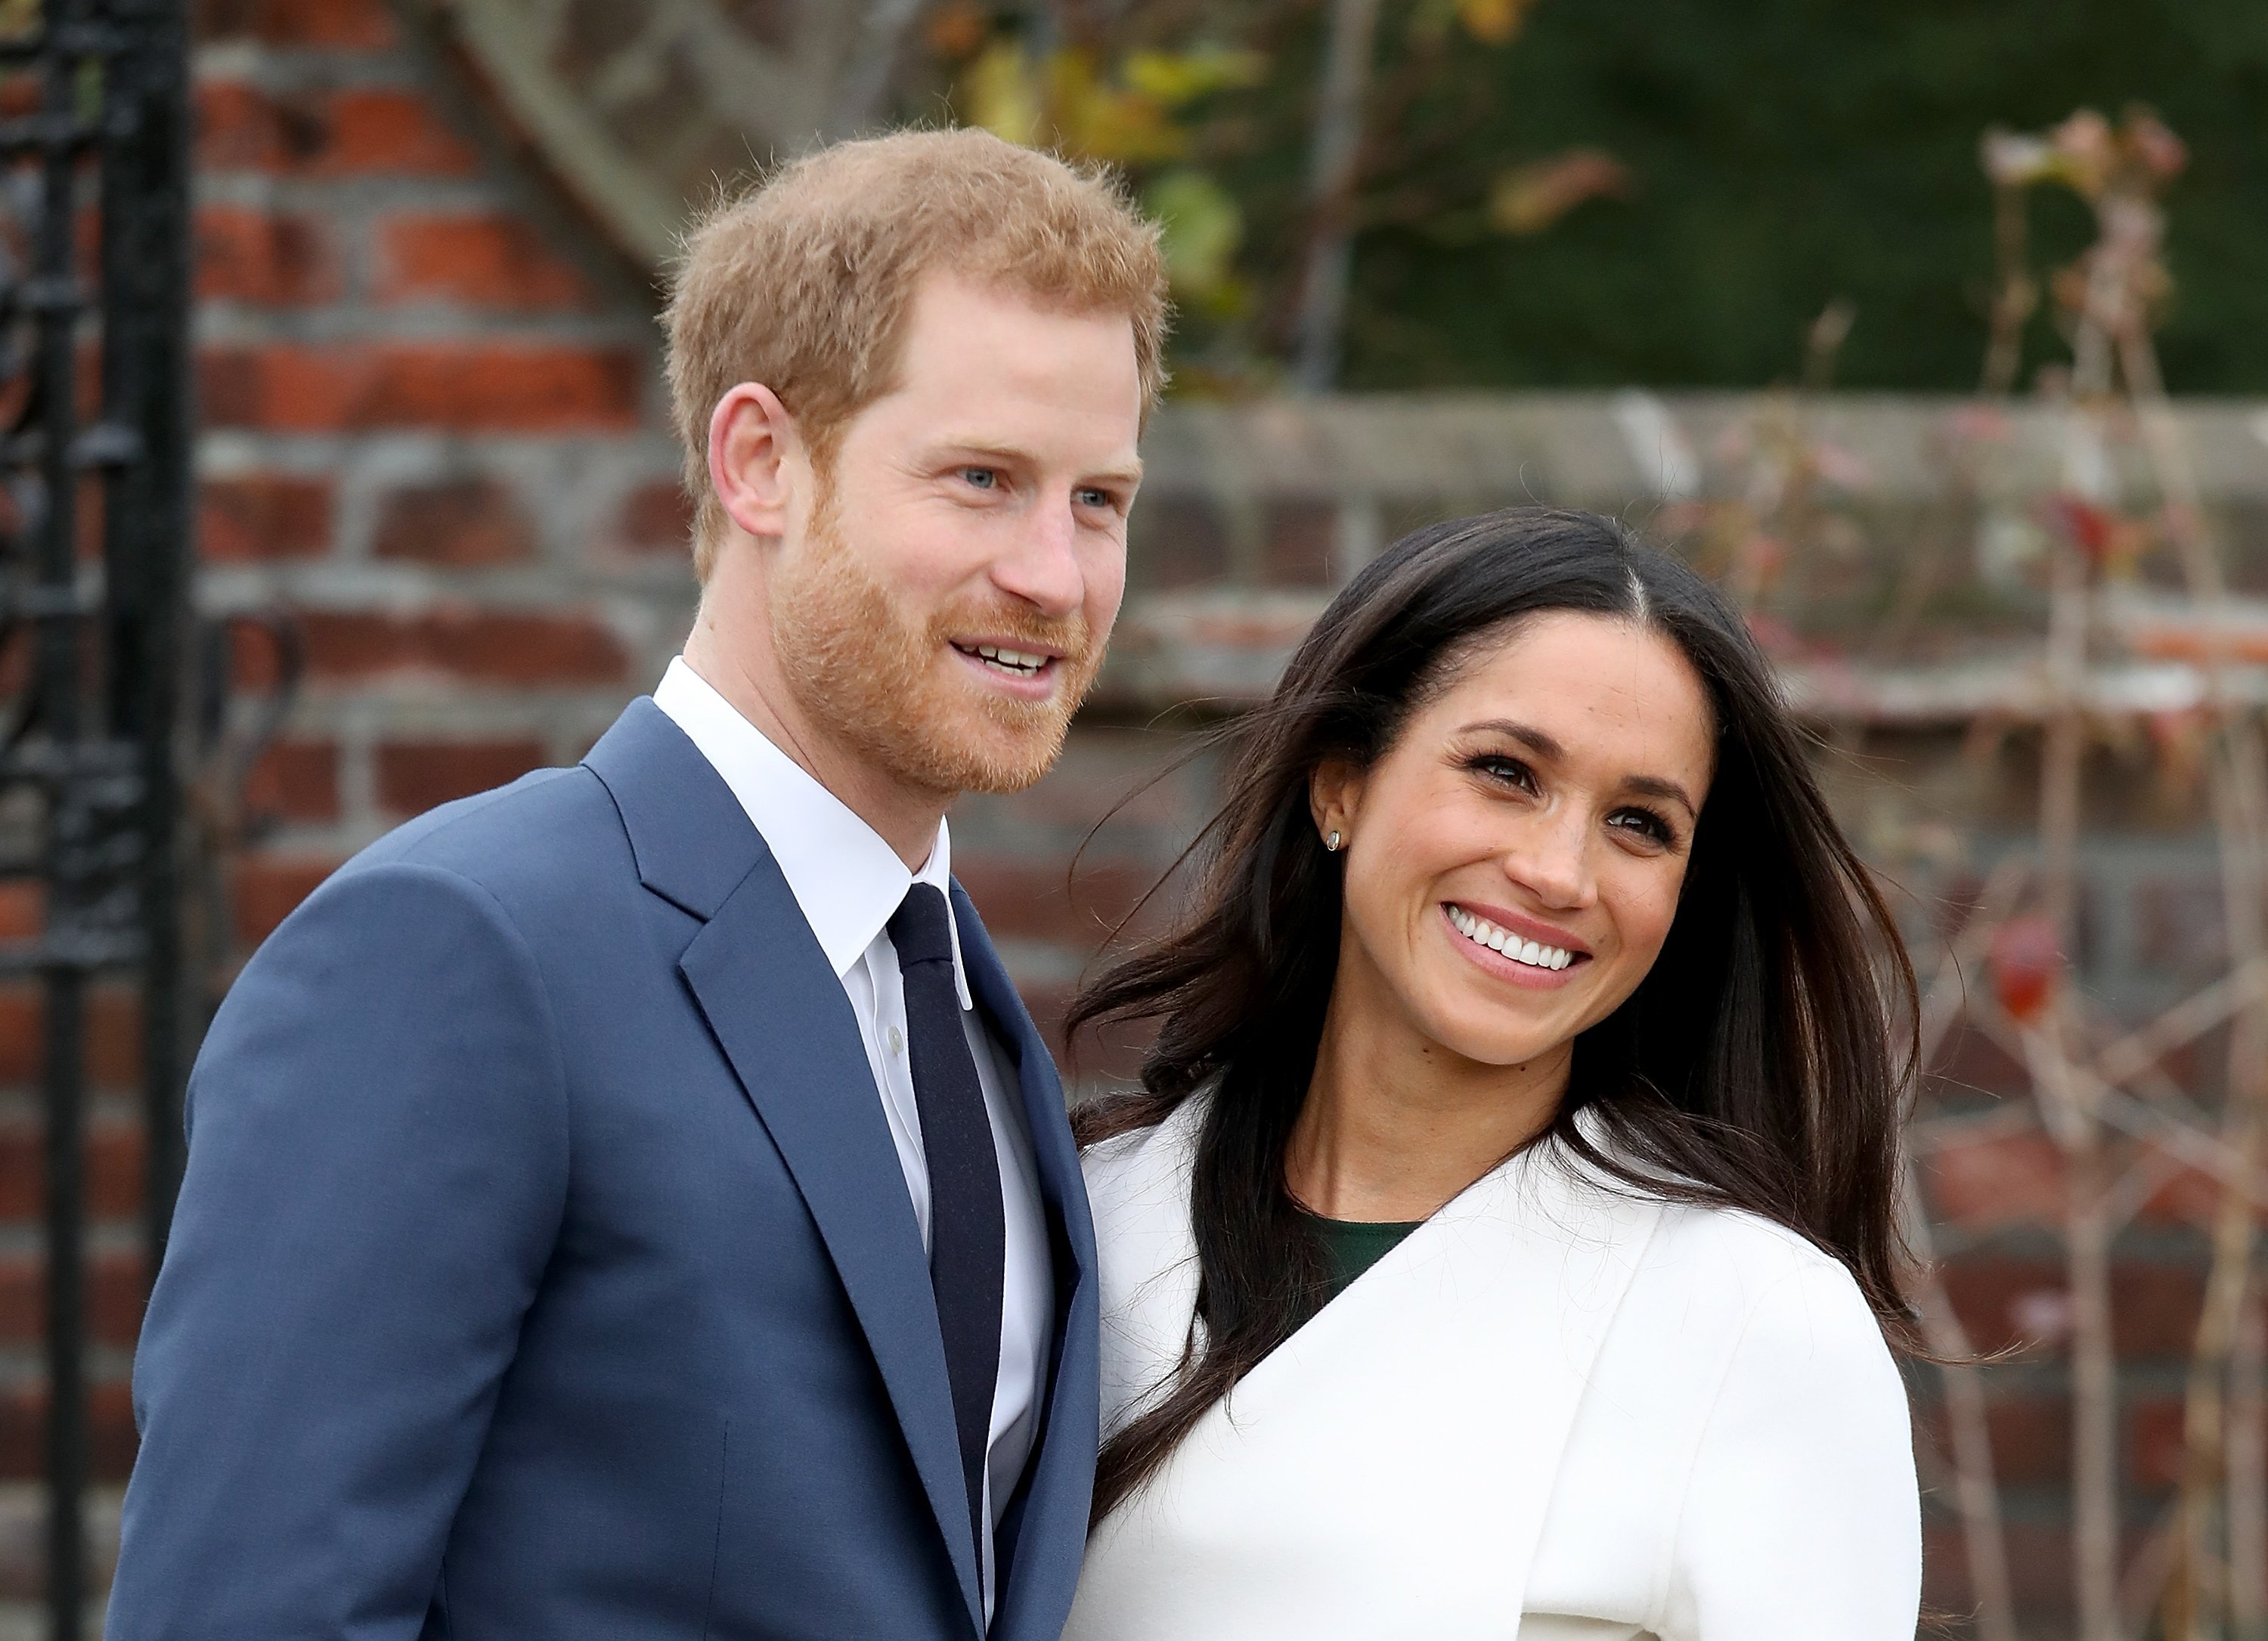 Prince Harry and Meghan Markle announce their engagement at The Sunken Gardens at Kensington Palace on November 27, 2017 | Photo: GettyImages